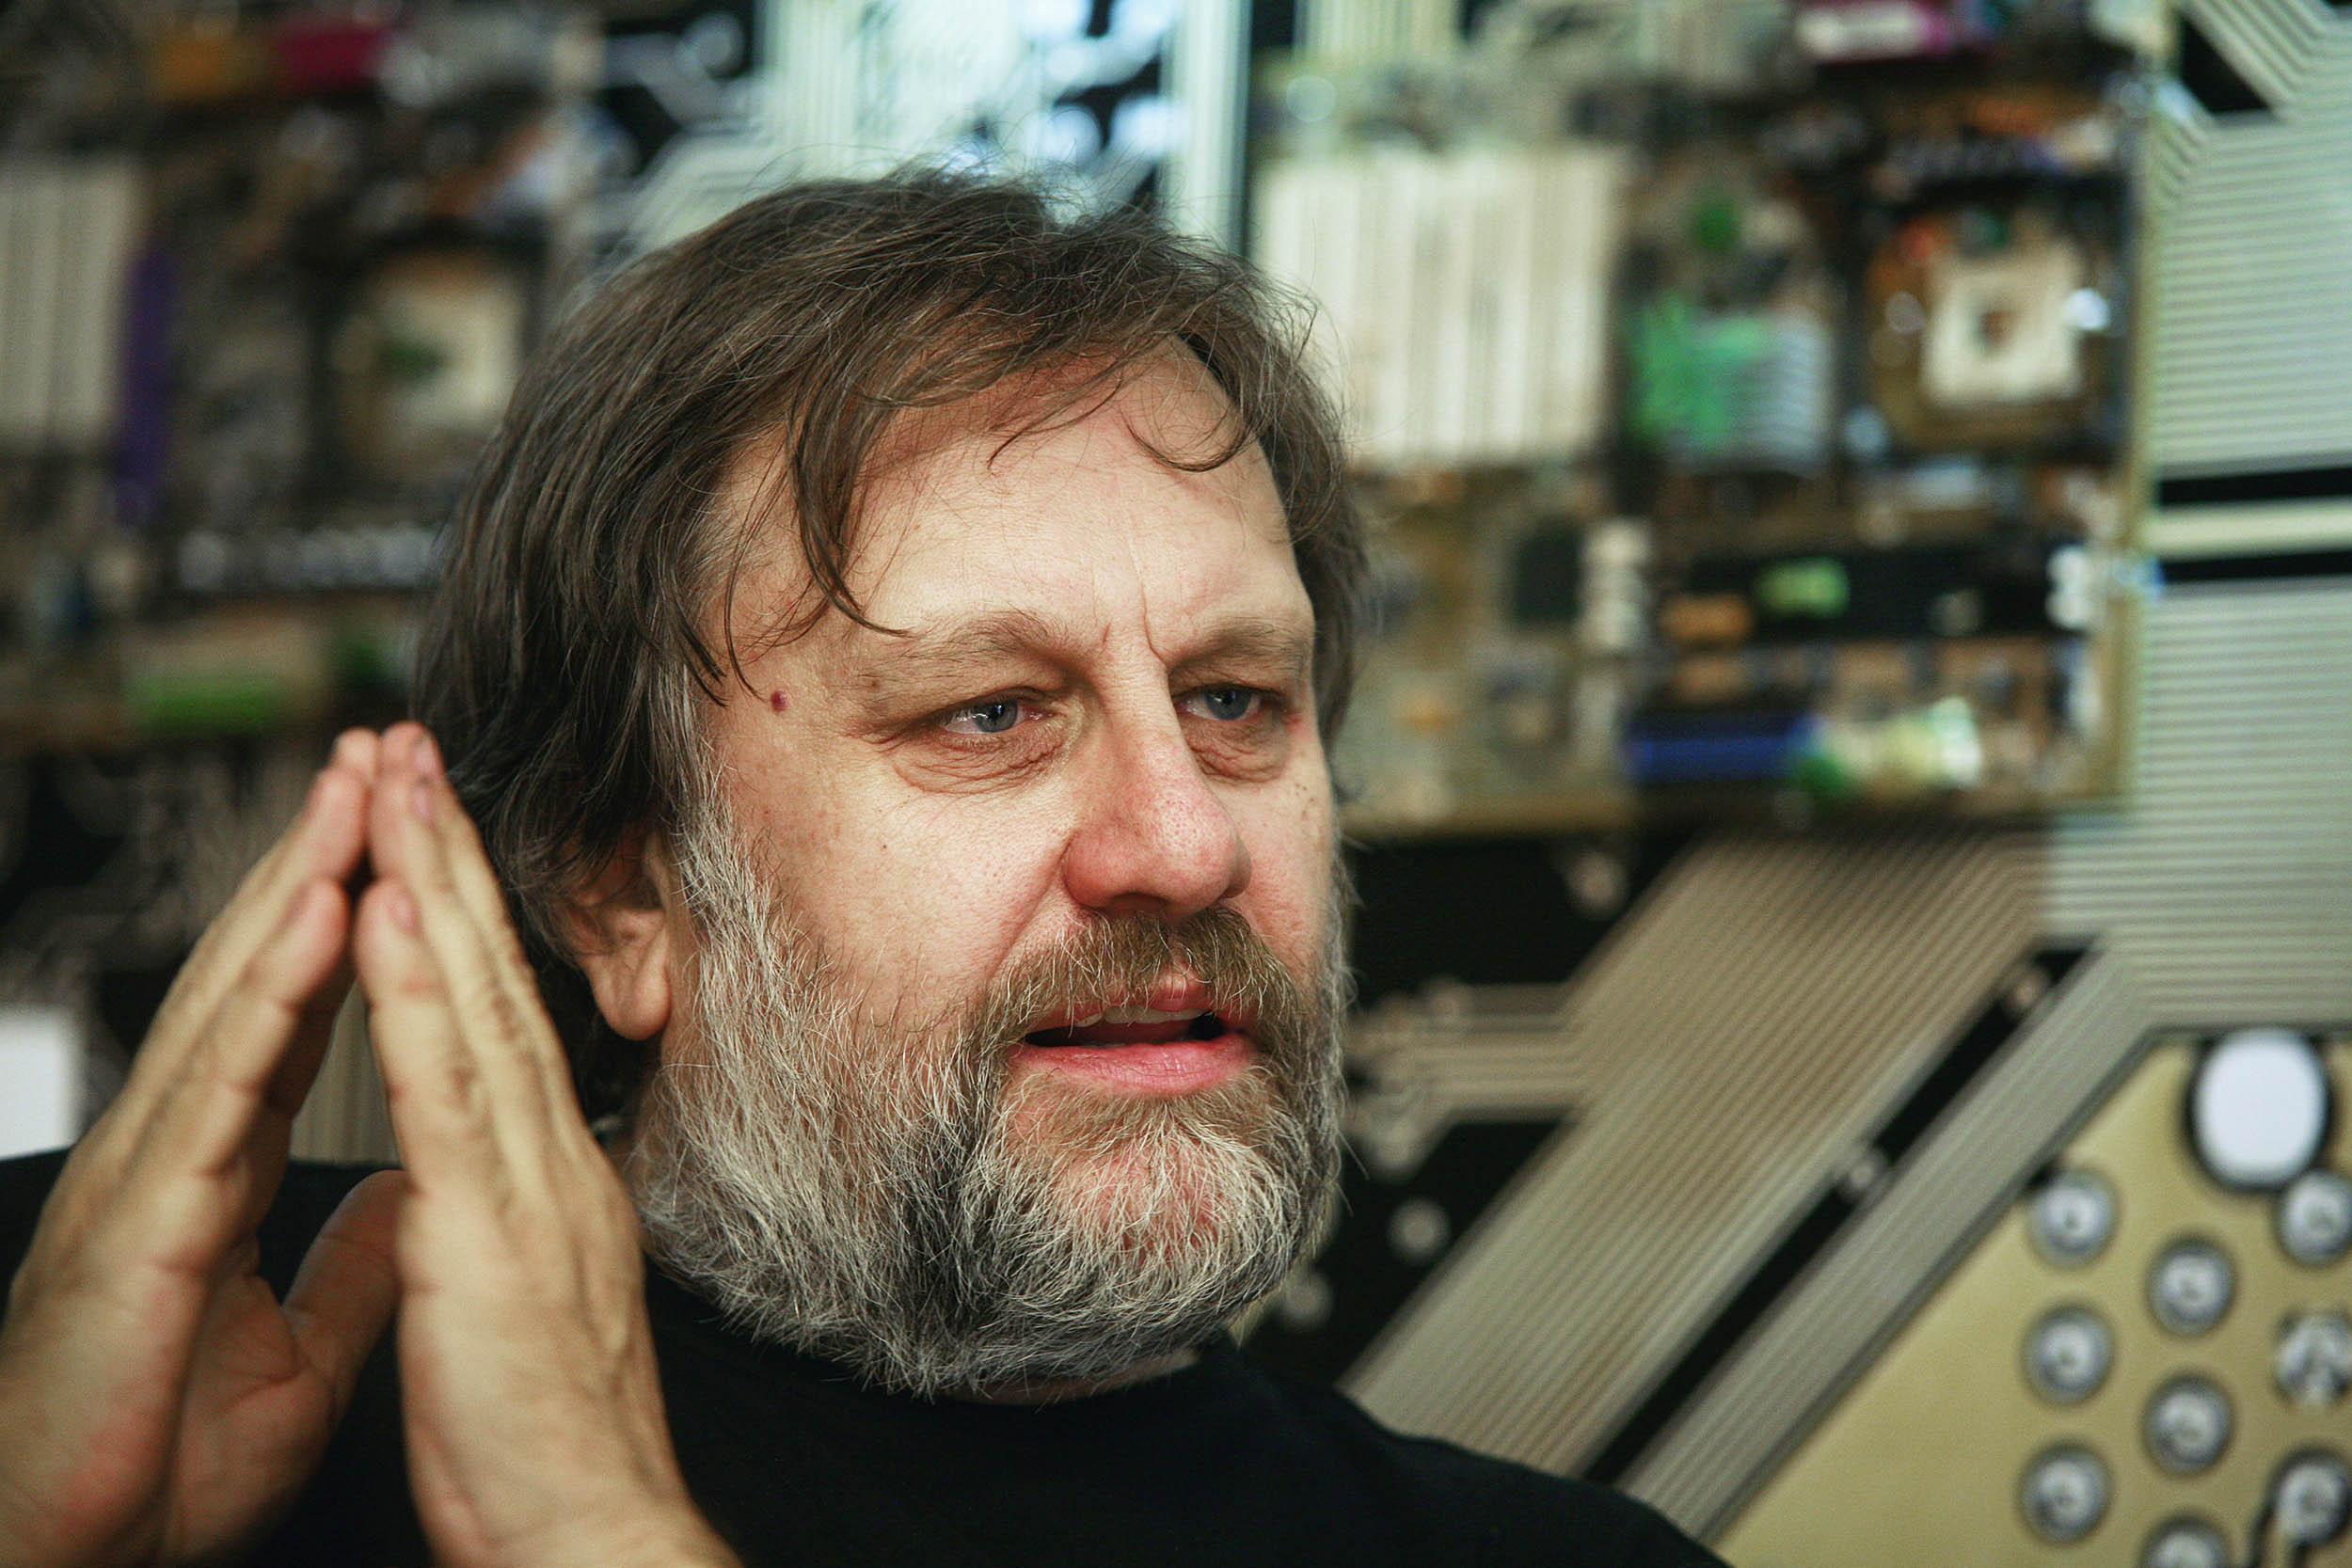 05 Dec 2009, Istanbul, Turkey --- Istanbul, Turkey. 5th December 2009 -- Slavoj Zizek is a Slovene philosopher and cultural critic. He is a senior researcher at the Institute for Sociology and Philosophy, University of Ljubljana, Slovenia, international director of the Birkbeck Institute for the Humanities. --- Image by © Sahan Nuhoglu/Demotix/Corbis